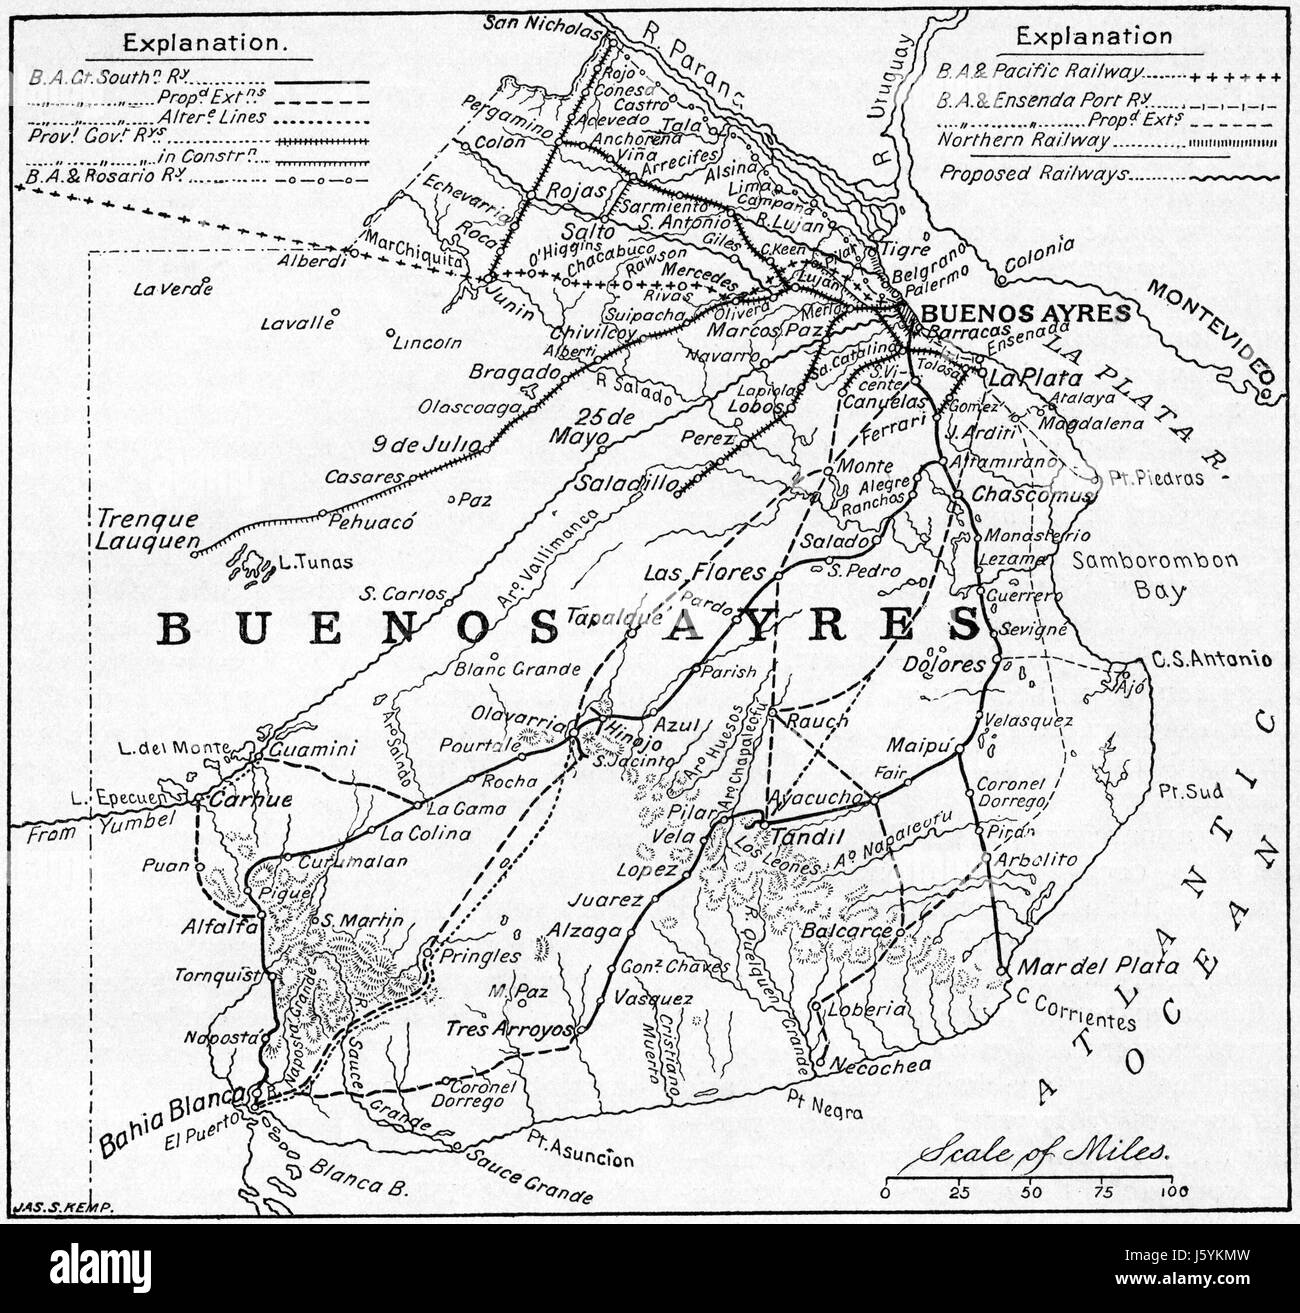 Argentina Map Stock Photos Argentina Map Stock Images Alamy - Argentine railway map